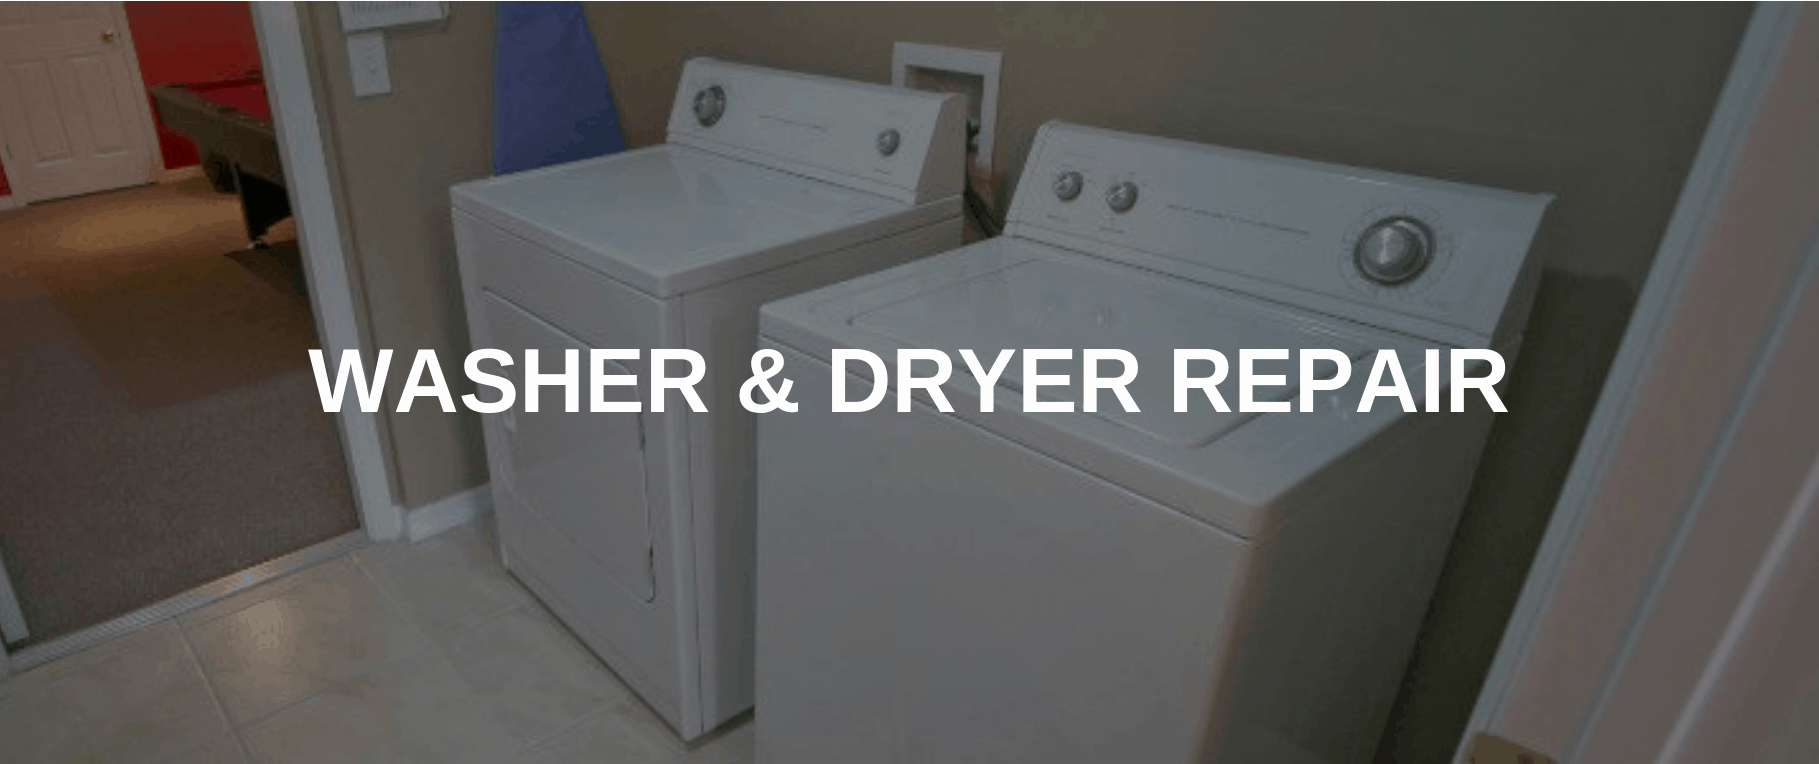 washing machine repair arlington